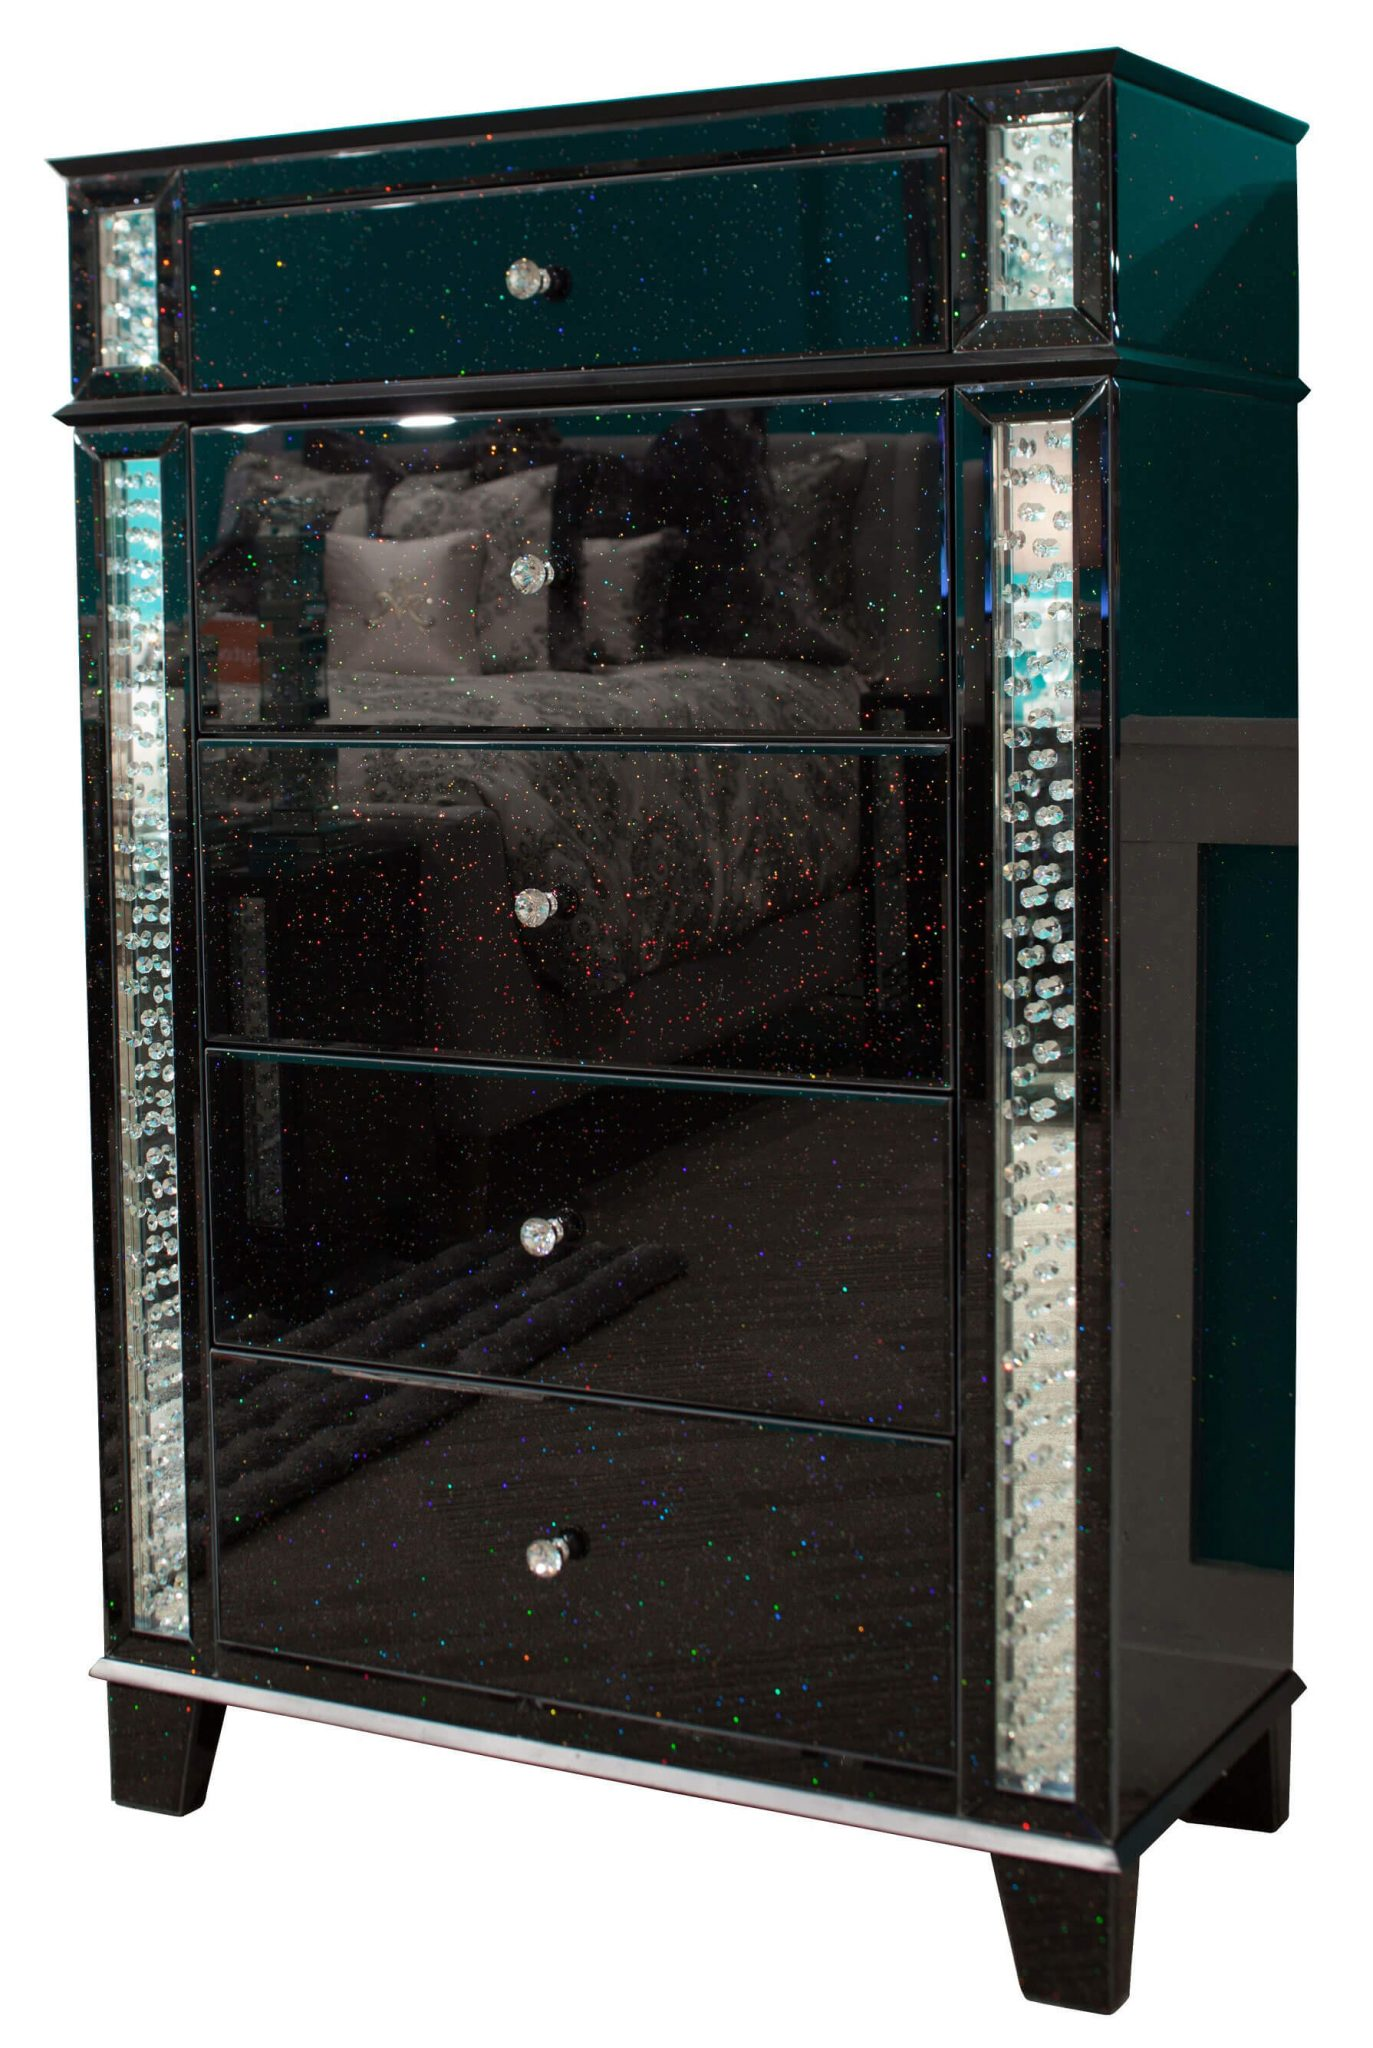 storage furniture accent aico chest crystal inserted heavy table legs black trestle small kitchen counter lamps entryway with drawer door bar dale tiffany lighting gold glass